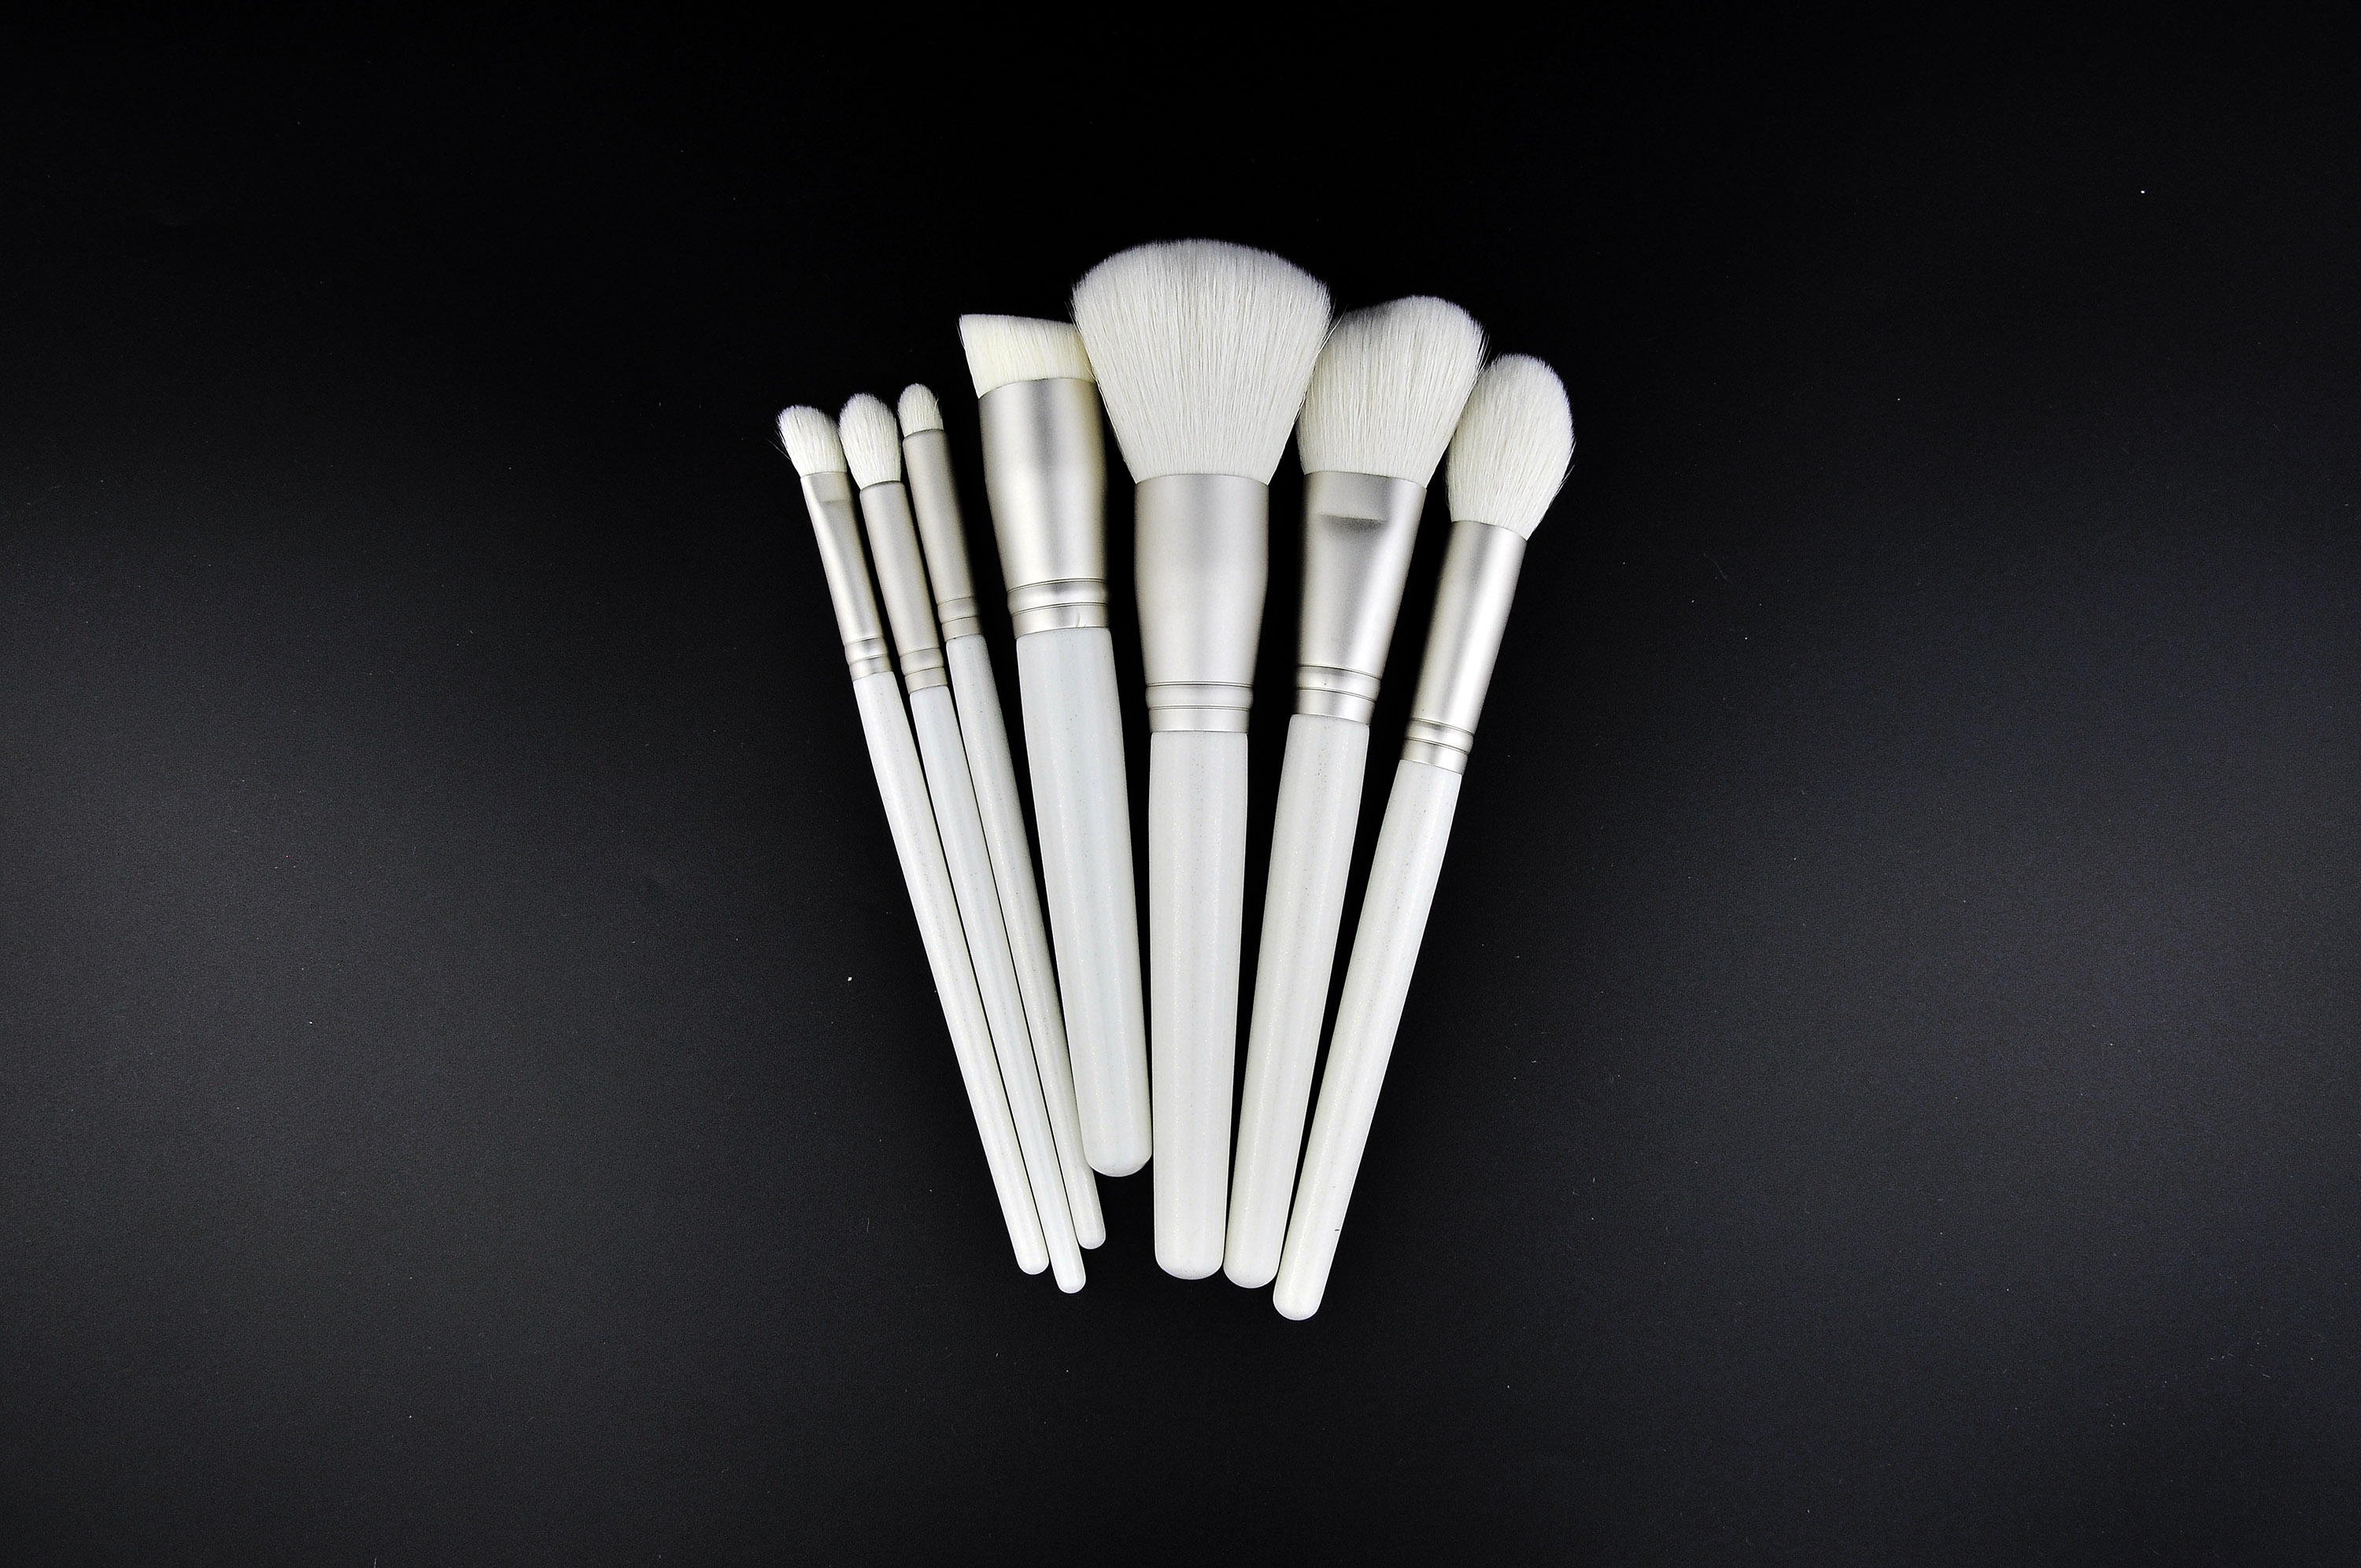 OUMO BRUSH--New 7pcs white wood handle  goat hair makeup brush set private label with power brush